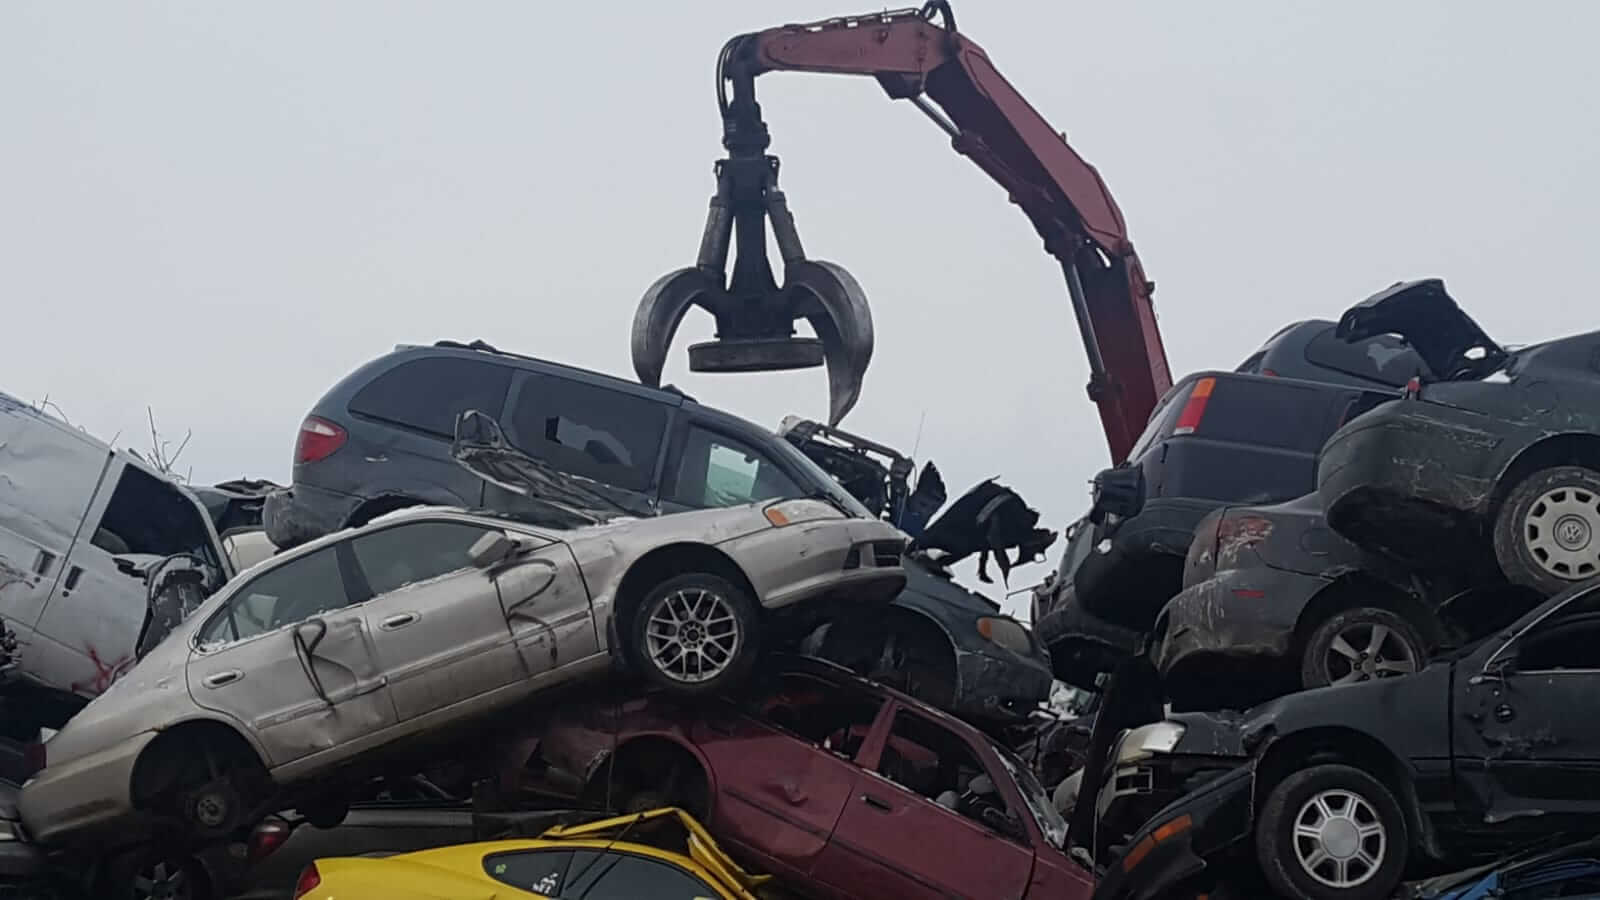 Cash for cars Etobicoke, junk car removal services Etobicoke